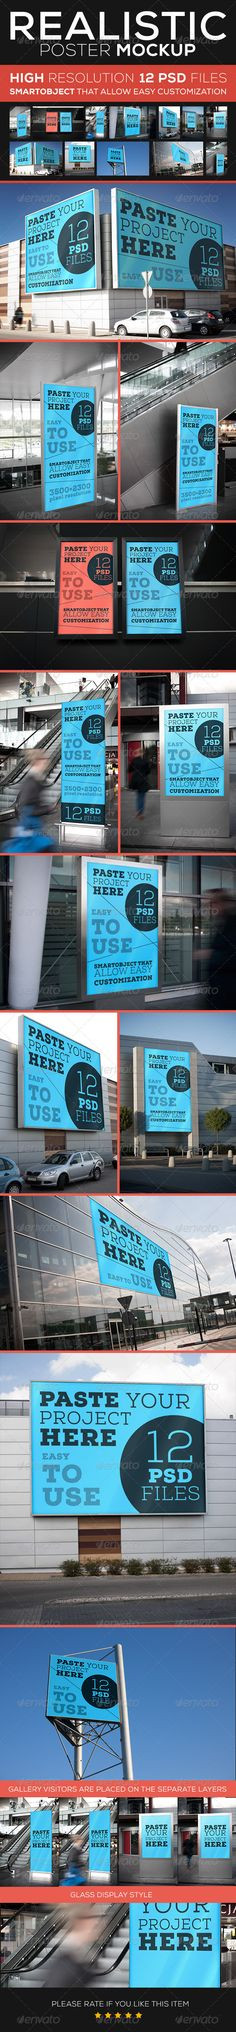 Poster Mock-Up #GraphicRiver ITEM DETAILS 12 realistic Poster Mock Up Photoshop CS2+ compatible 3500×2300 pixel resolution Easy and fast editing with smart objects Organizaed Layers and